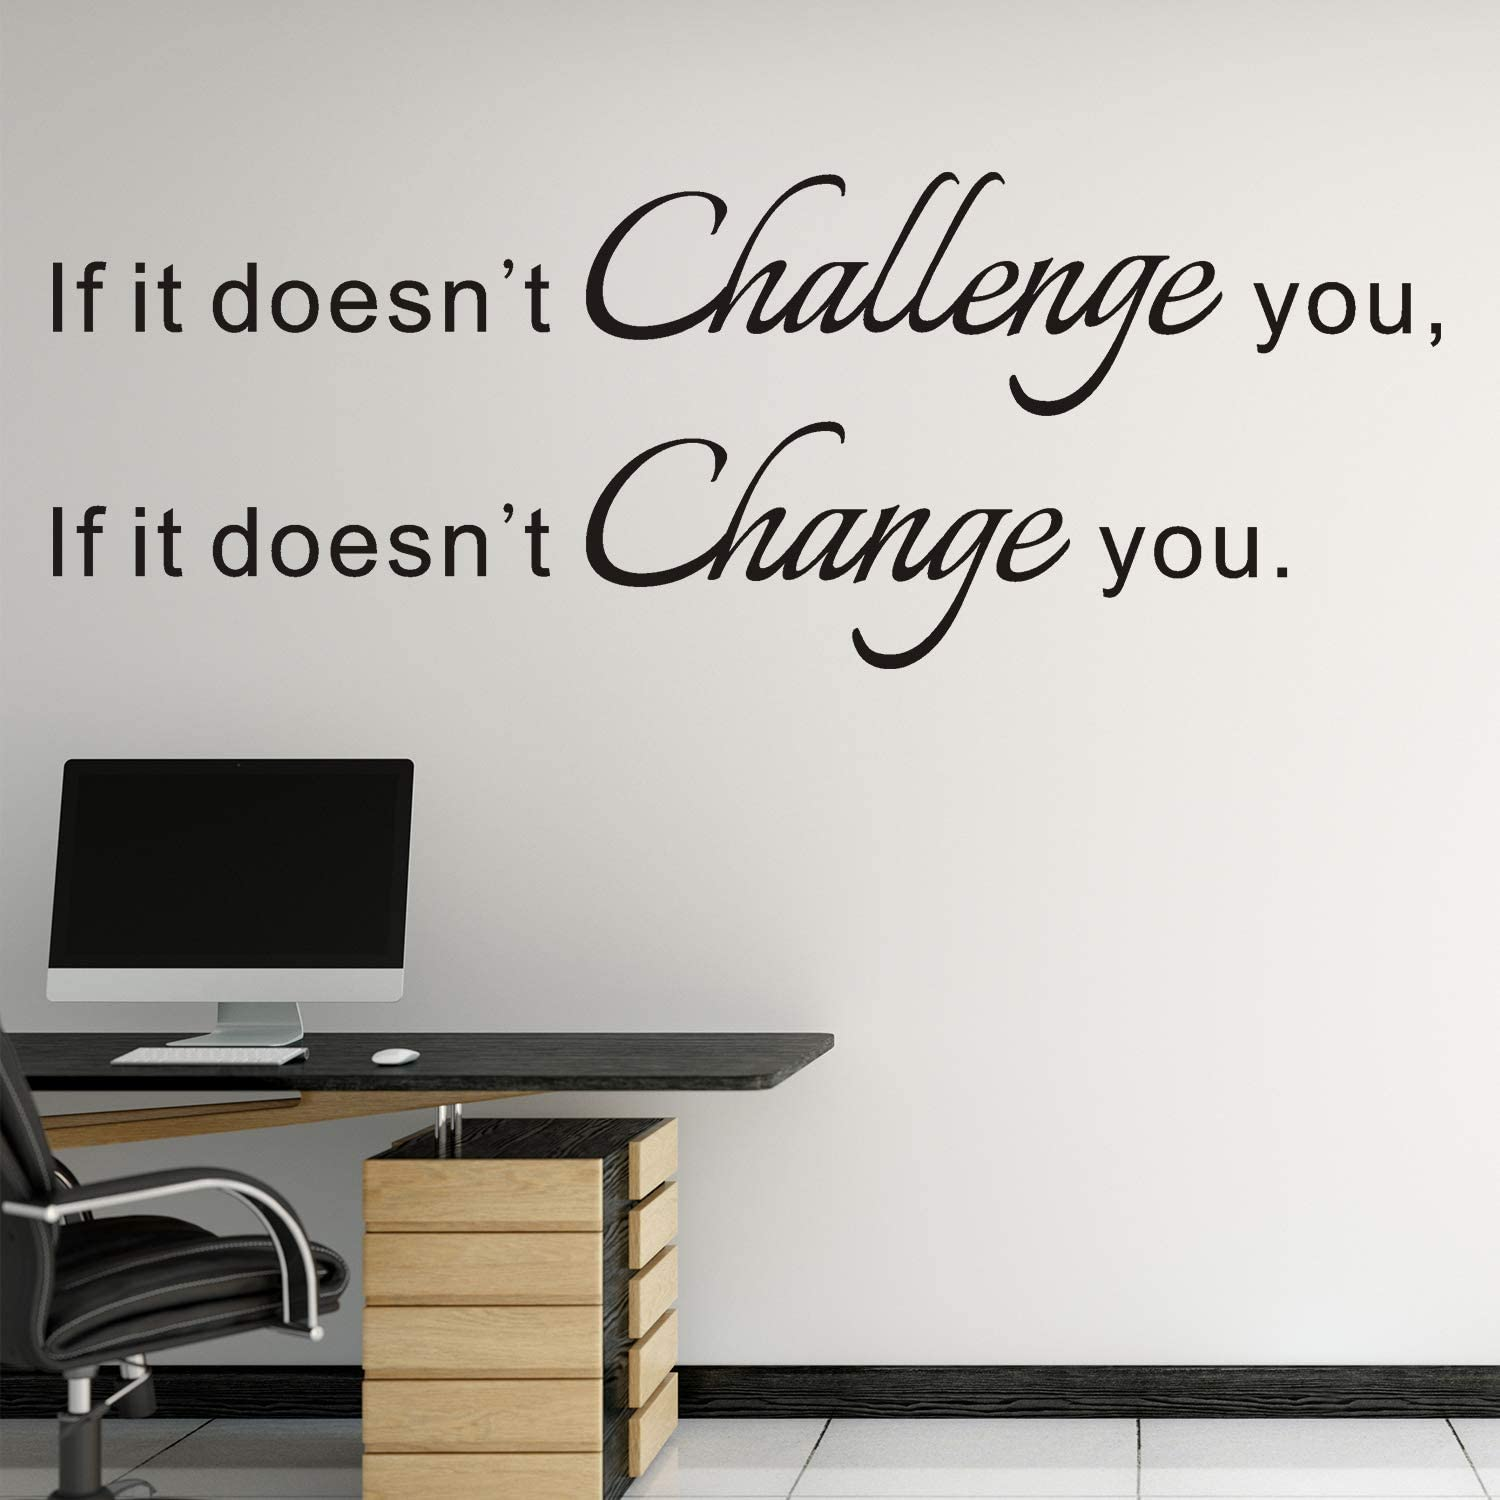 VODOE Quote Wall Decals, Office Wall Decal, Gym Inspirational Classroom Motivational School boy Fitness Dorm Home Art Decor Vinyl Stickers If it Doesn't Challenge You it Doesn't Change You 25.1